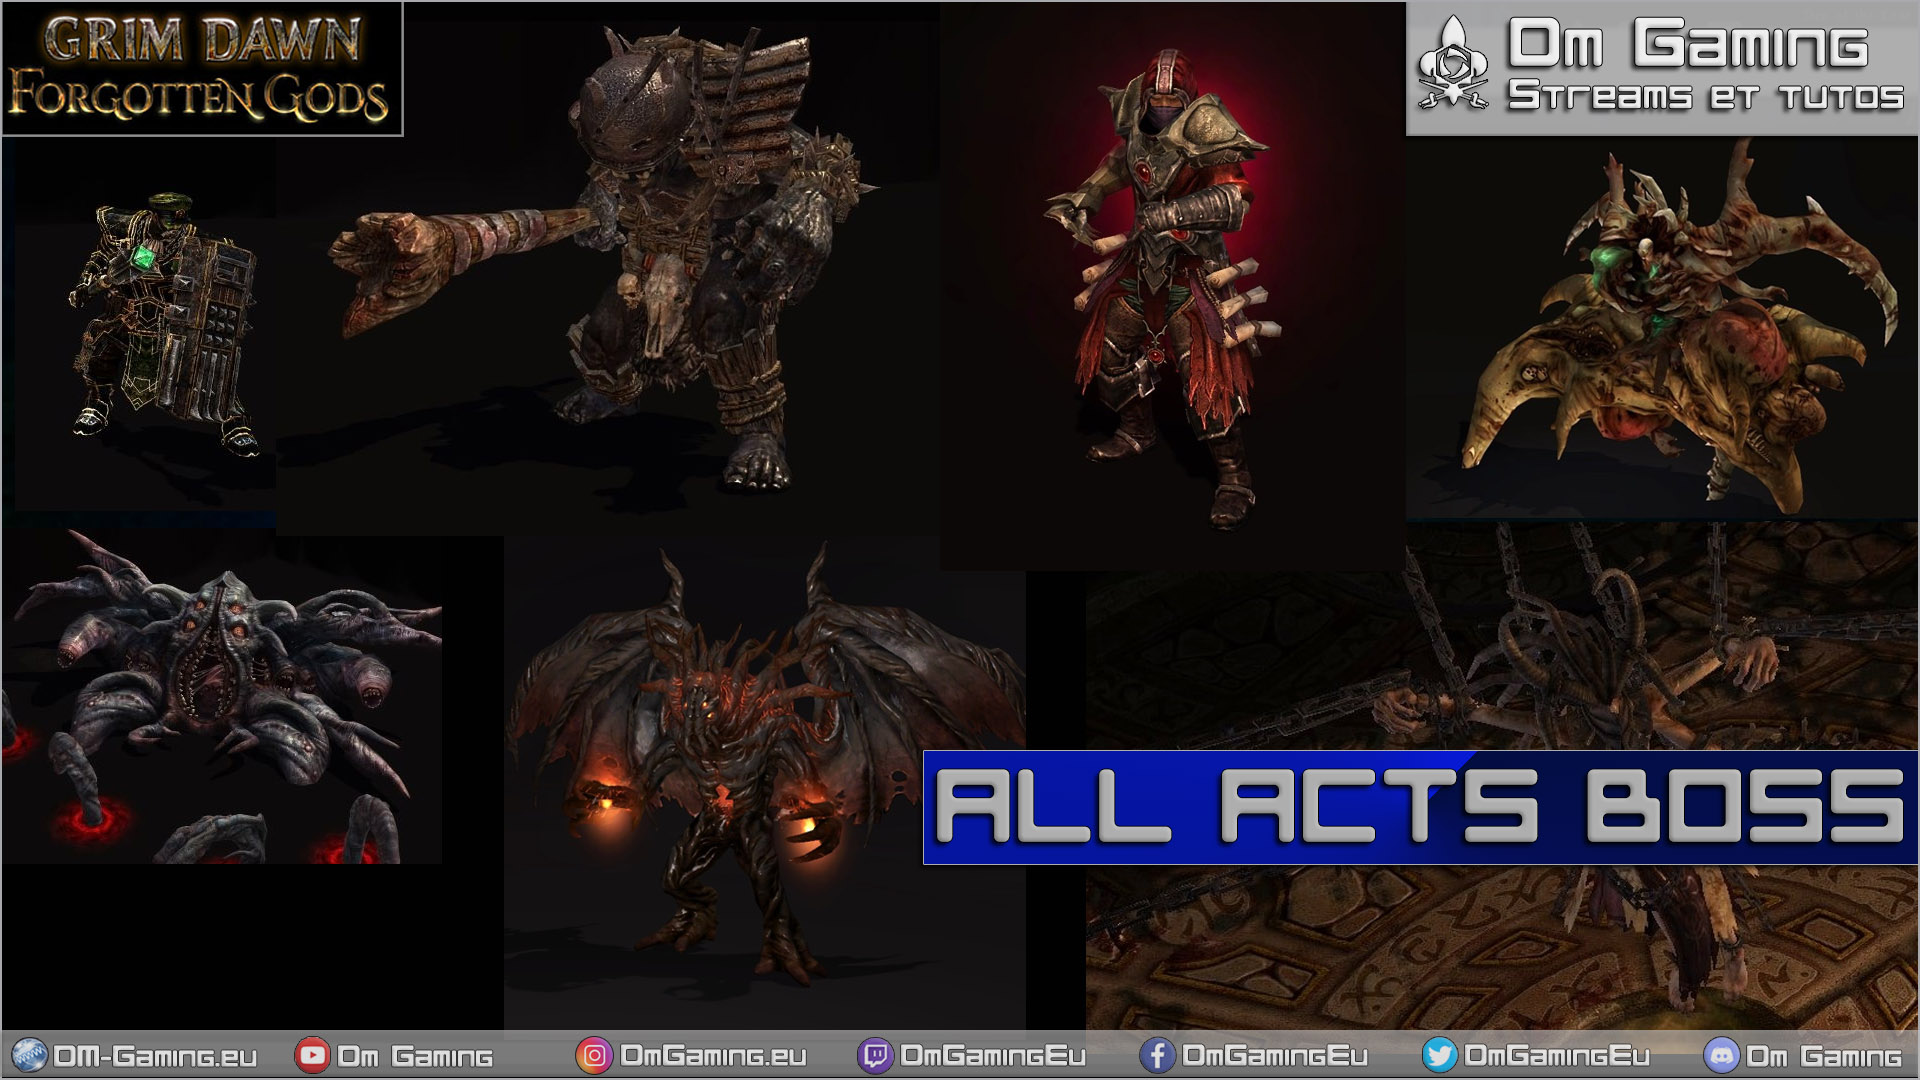 all act bosses on grim dawn